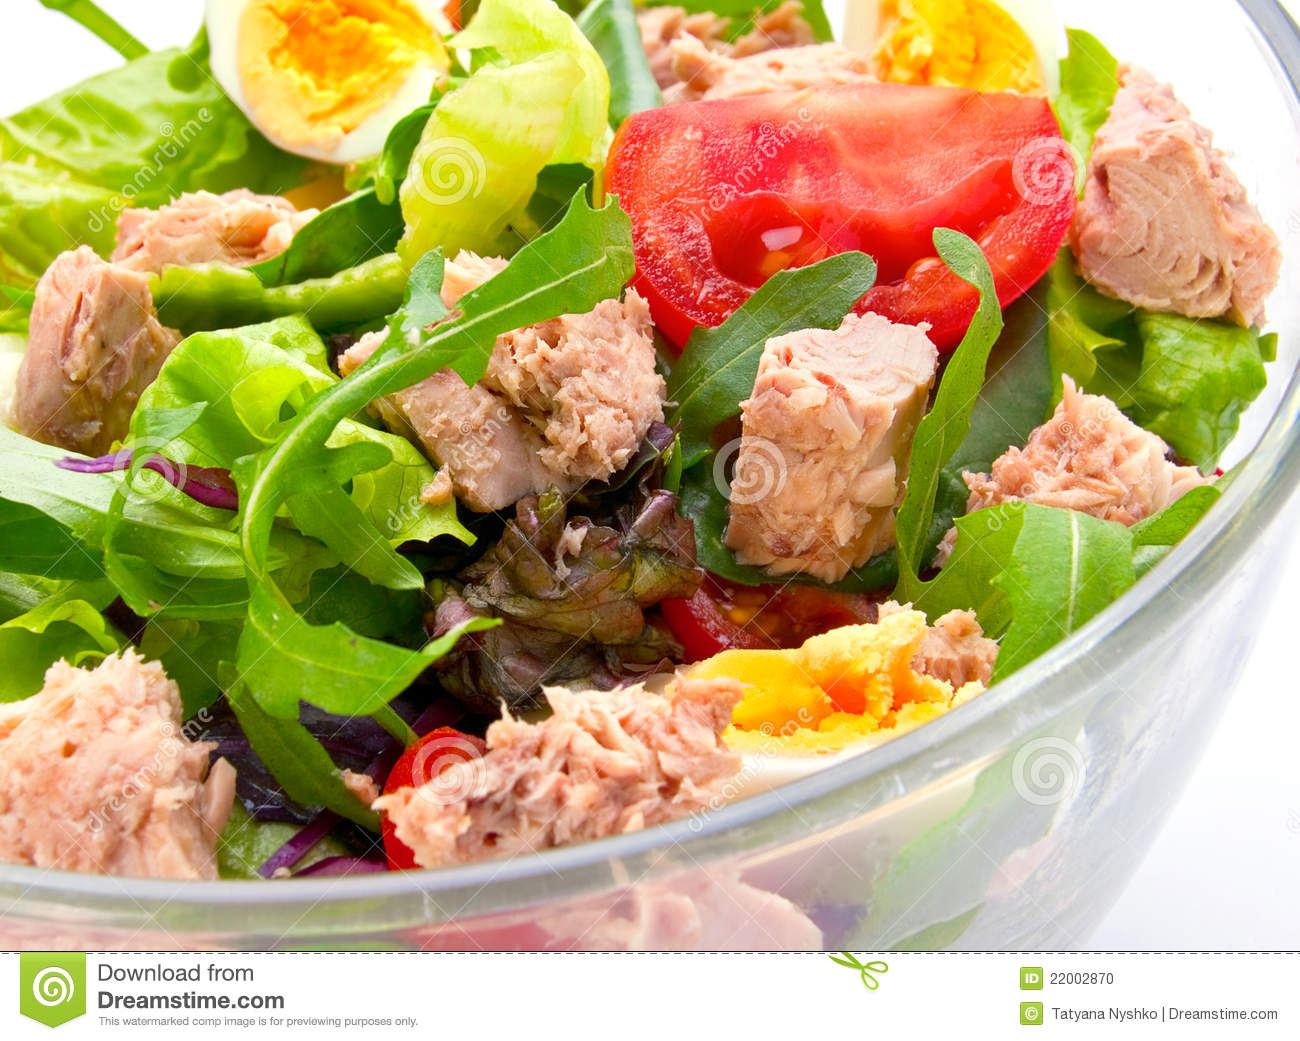 Salad with tuna fish stock photo image of image seafood for Fish and salad